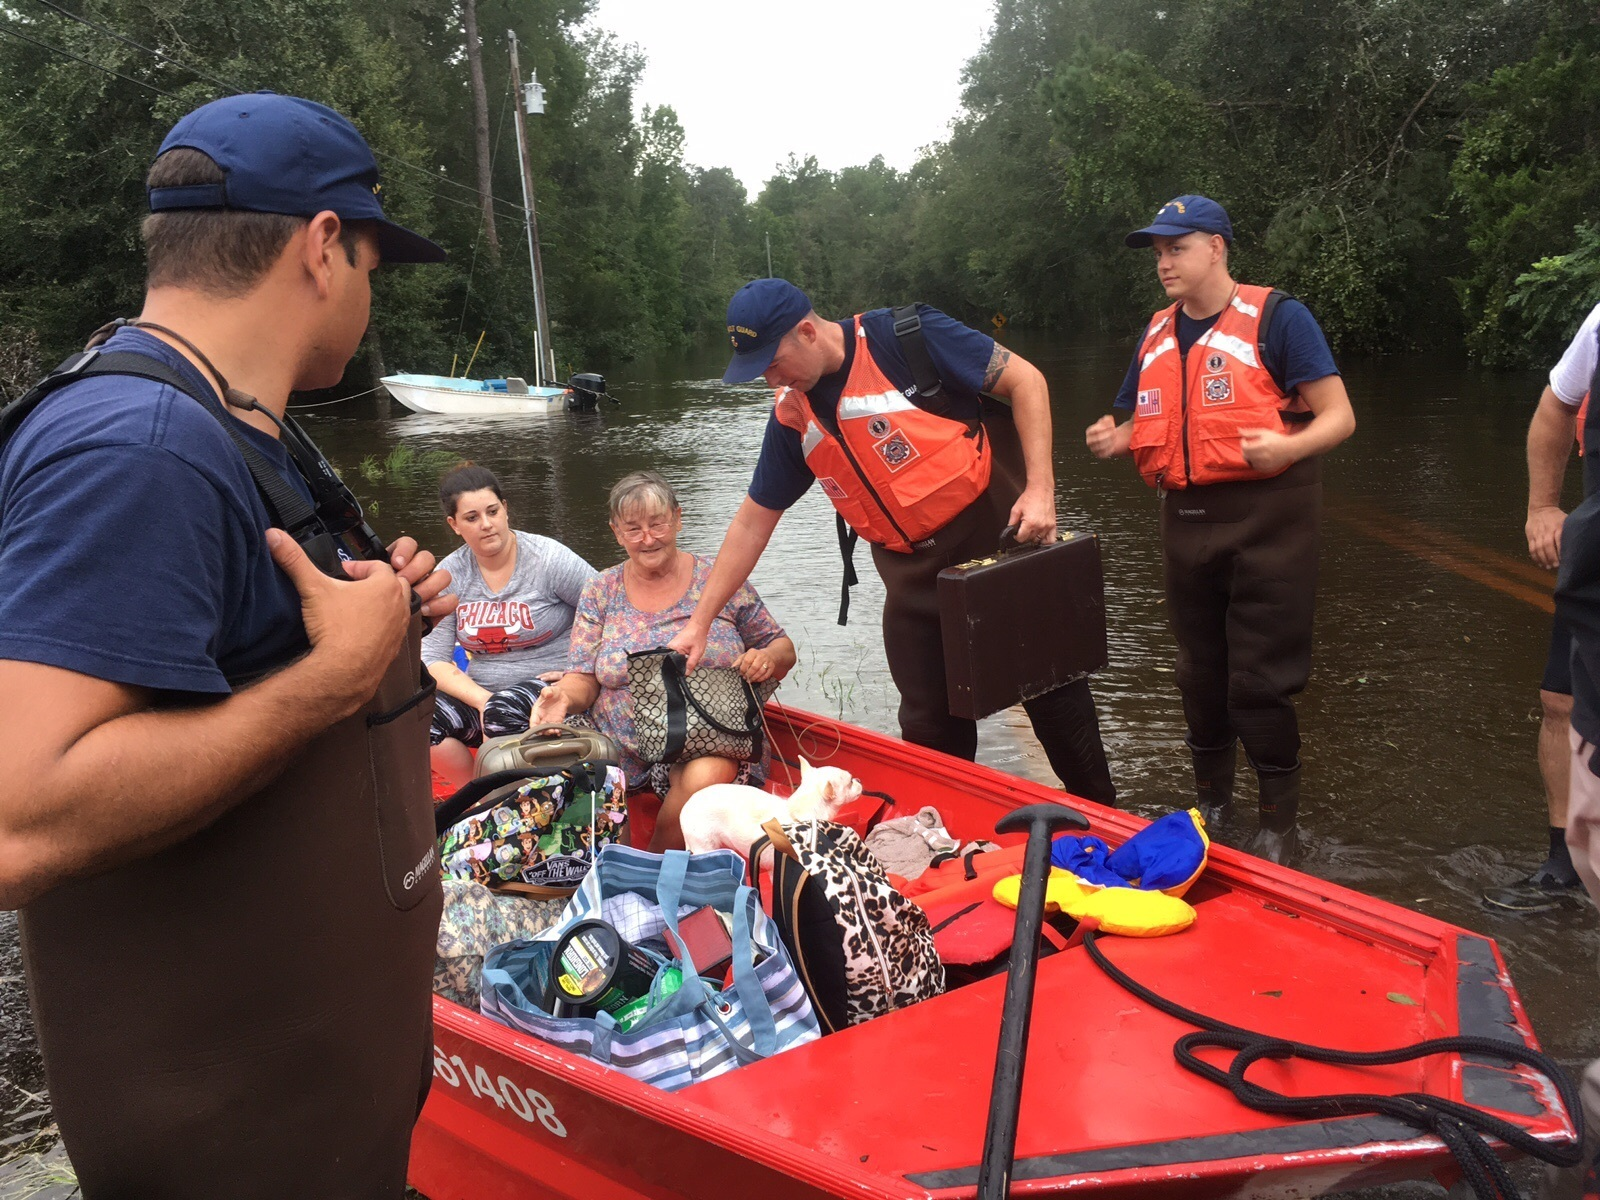 Coast Guard Flood Punt Teams conduct rescue operations in Jacksonville, Fla., Sept. 11, 2017. The Coast Guard has deployed assets and resources from across the country to assist in rescue operations for Hurricane Irma. (U.S. Coast Guard)